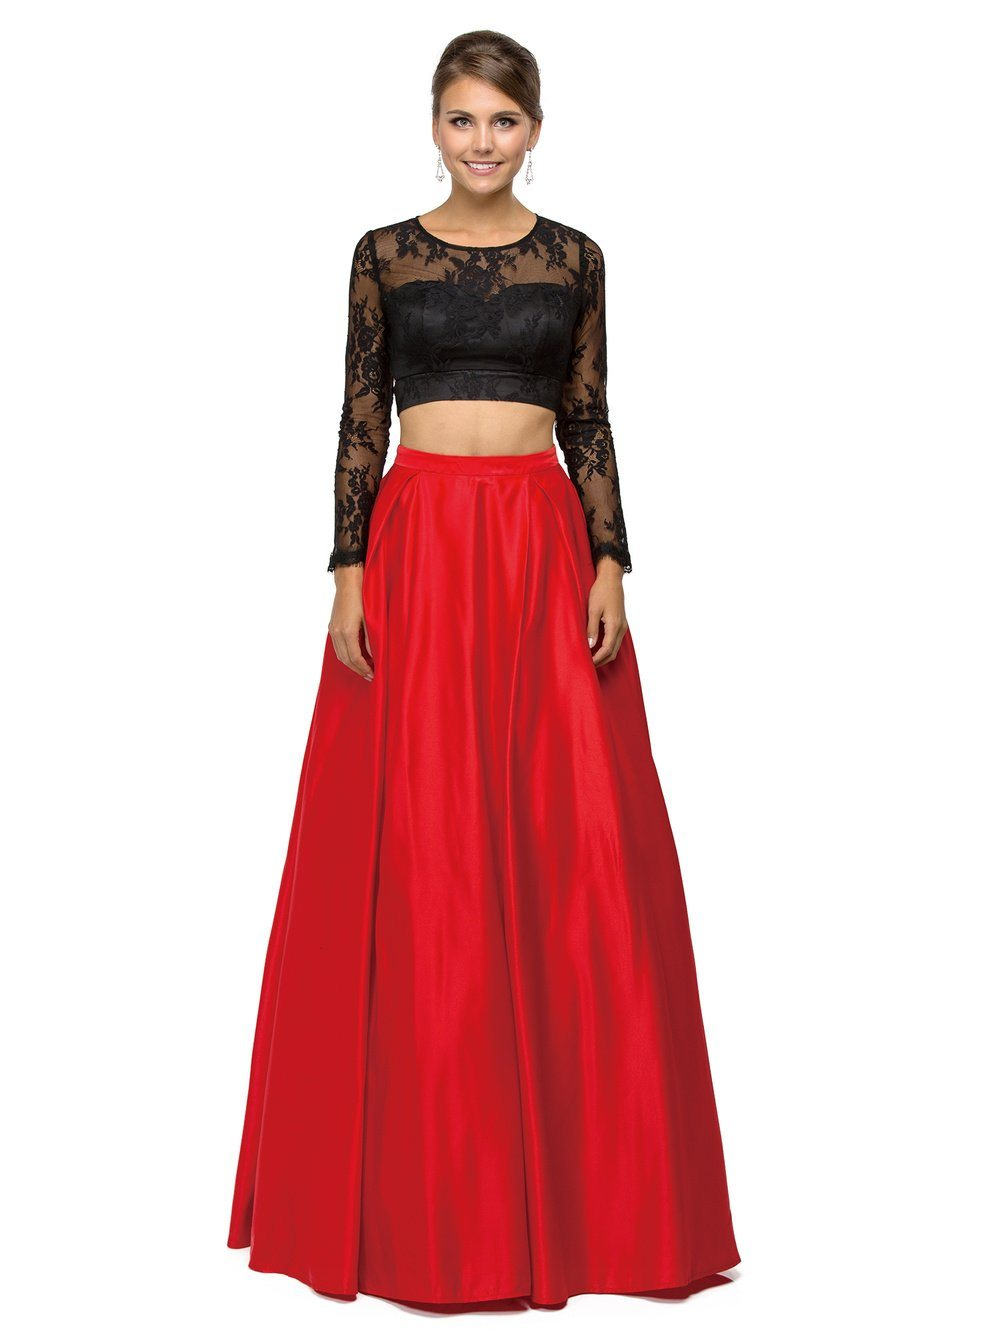 Black and Red Long Prom Dresses